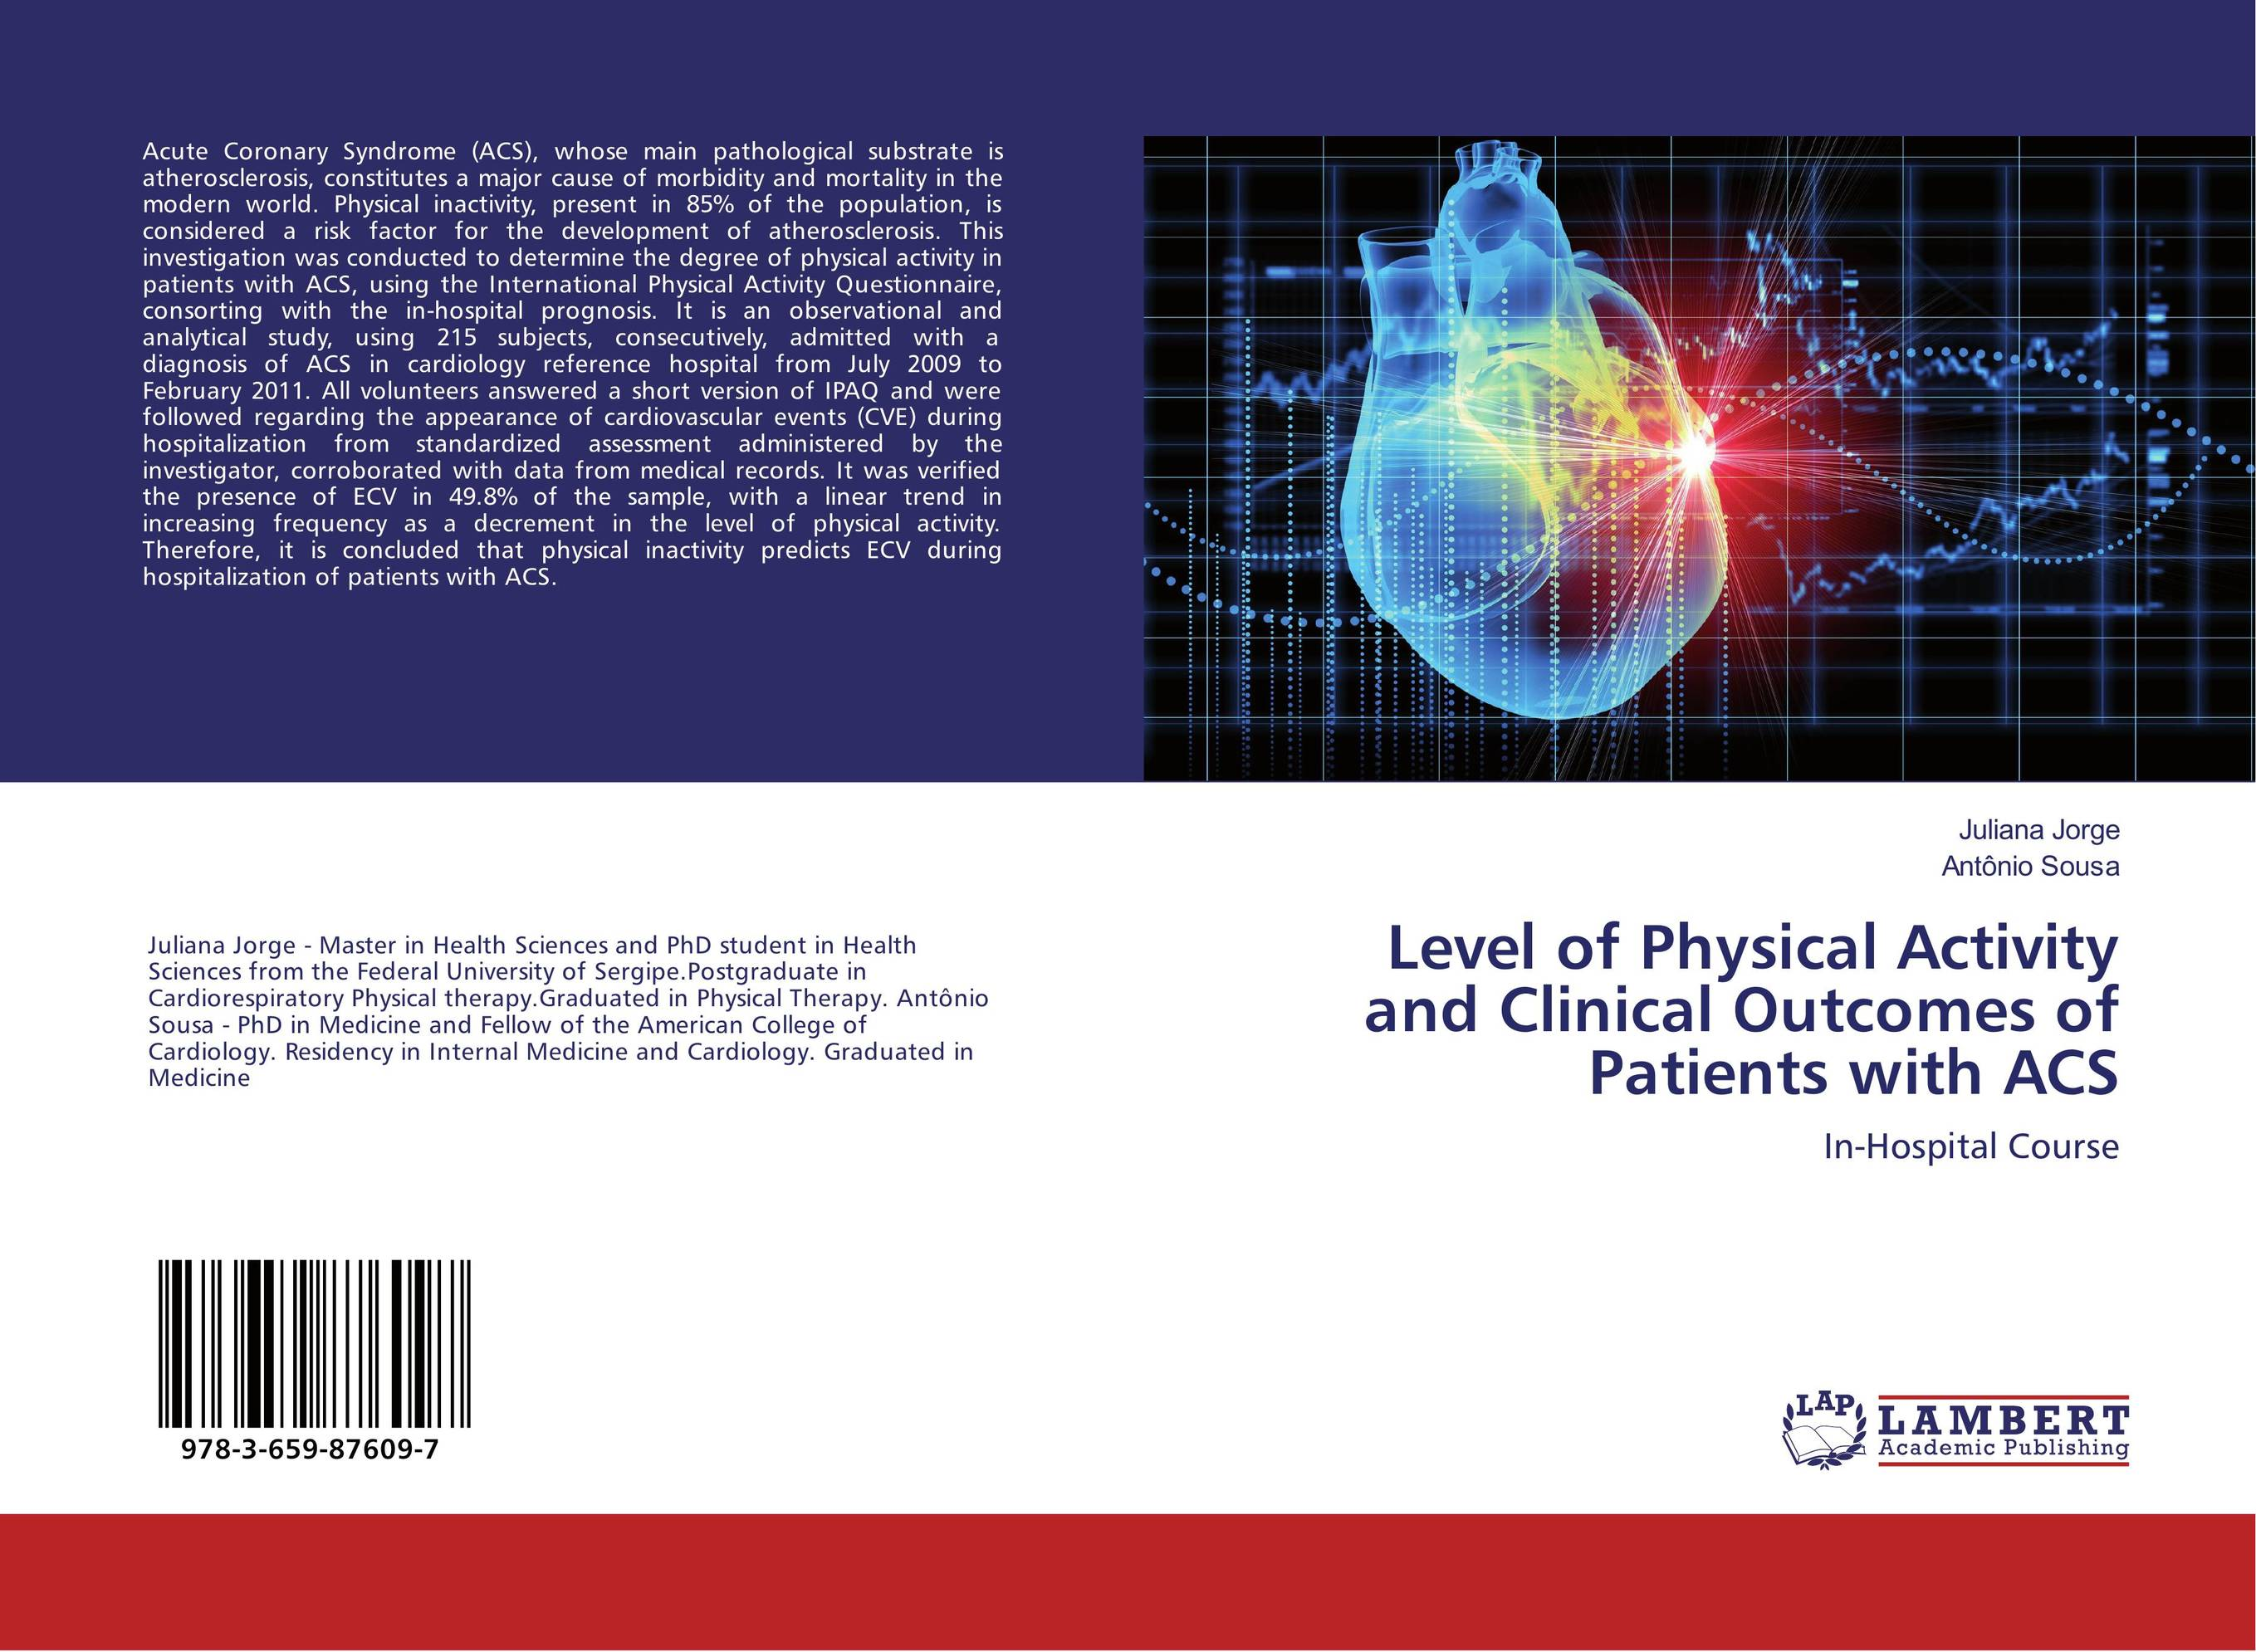 Level of Physical Activity and Clinical Outcomes of Patients with ACS relationship between physical activity level and exercise capacity